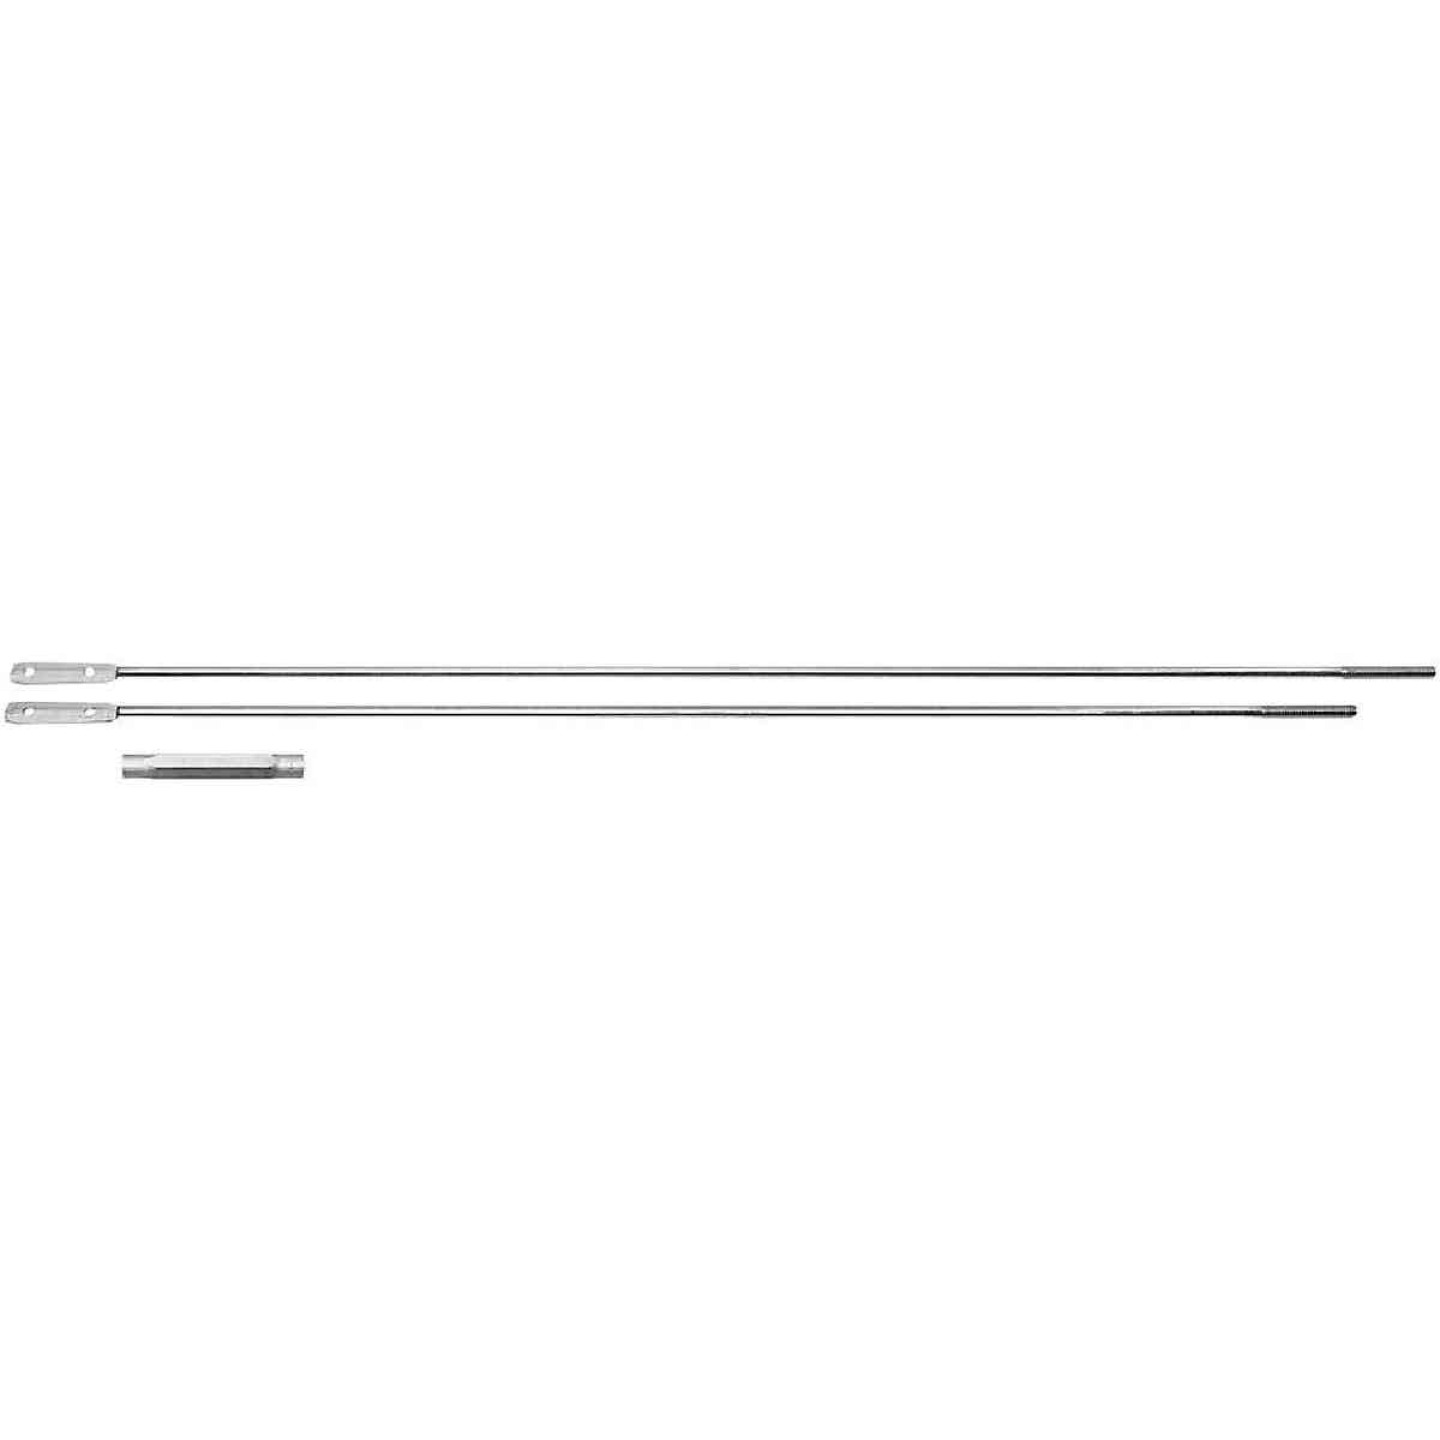 National 50 In. Zinc Screen Door Turnbuckle Image 1